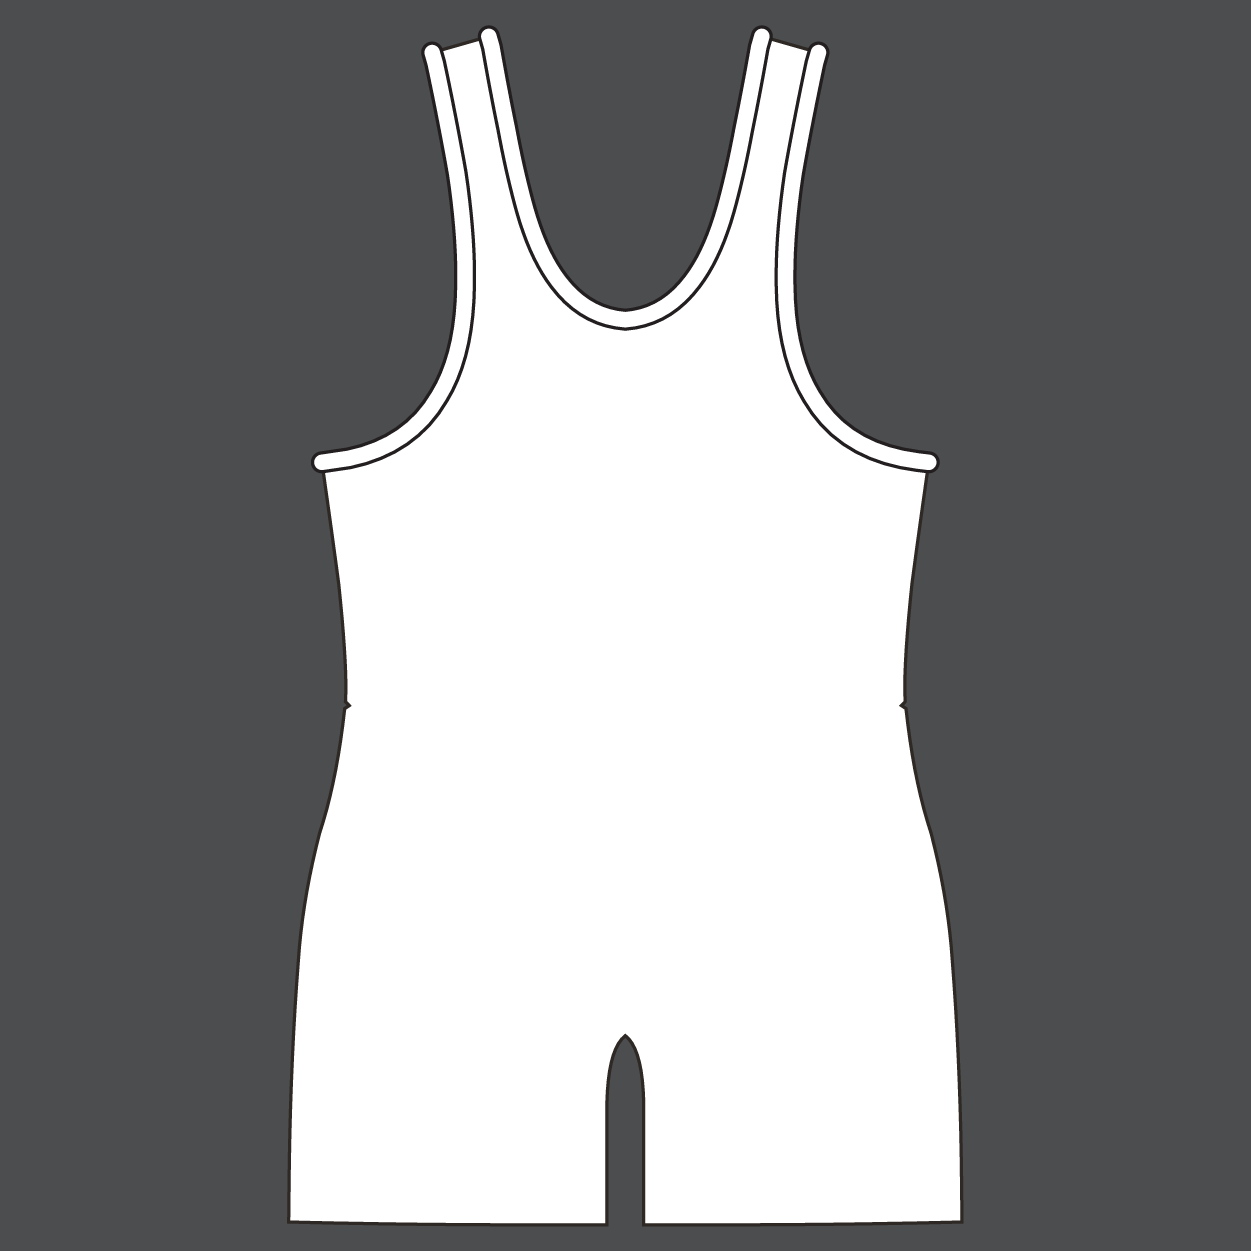 Wrestling Singlet - Retail Price: $74.99 Team Price 12-23: $59.99 Team Price 24+: $54.99Team Price 50+: Contact your Emblem Rep for a custom quoteFabric: LycraSizes: YXS, YS, YM, YL, XS, S, M, L, XL, XXL, XXXLOptions: N/A